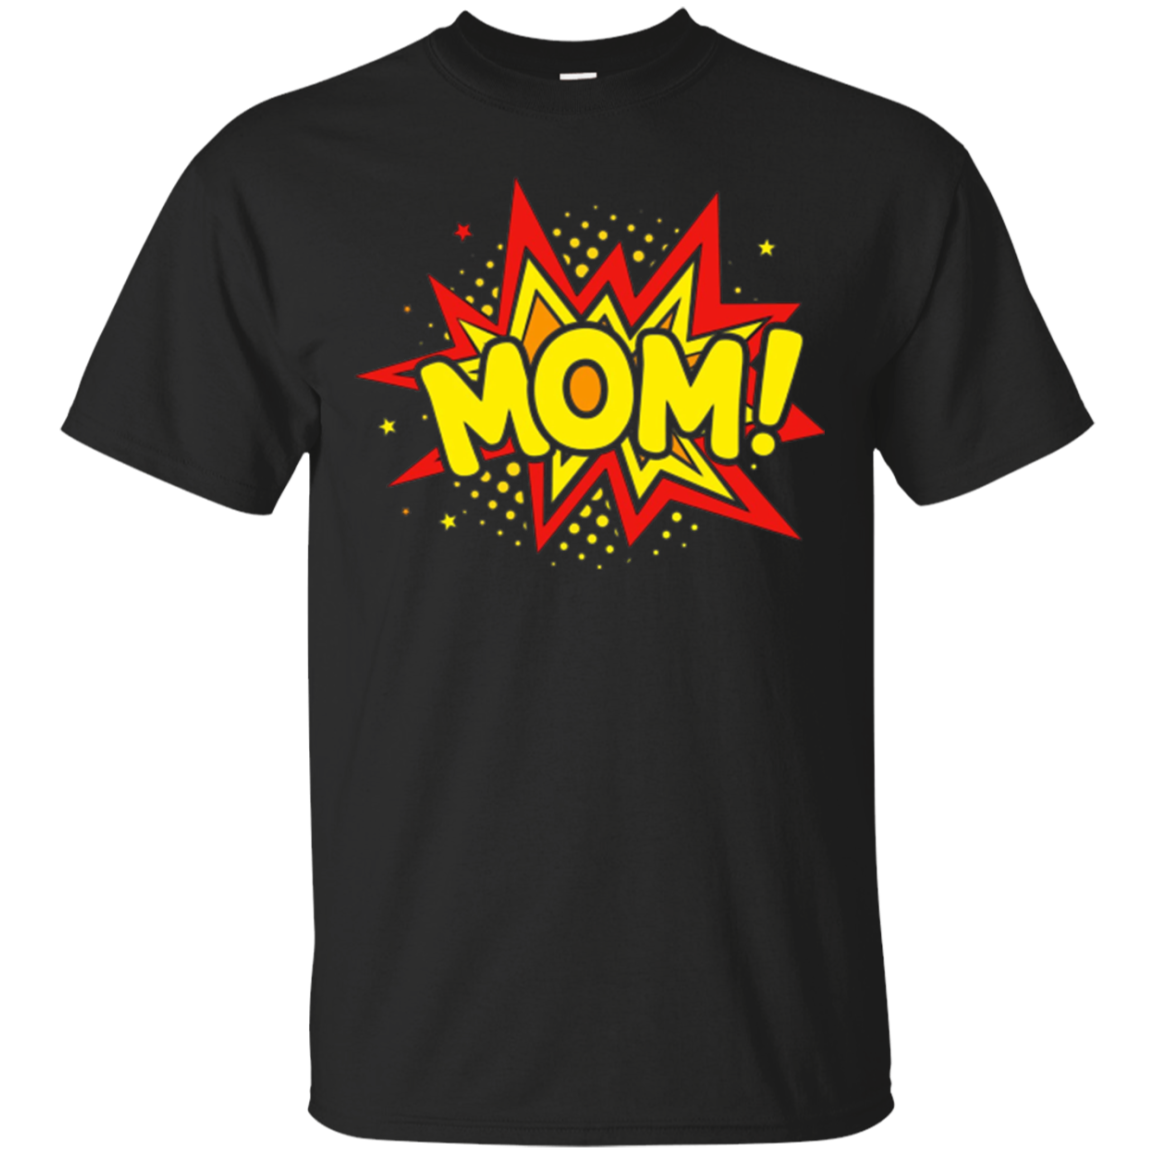 Women's Superhero Mom T-Shirts